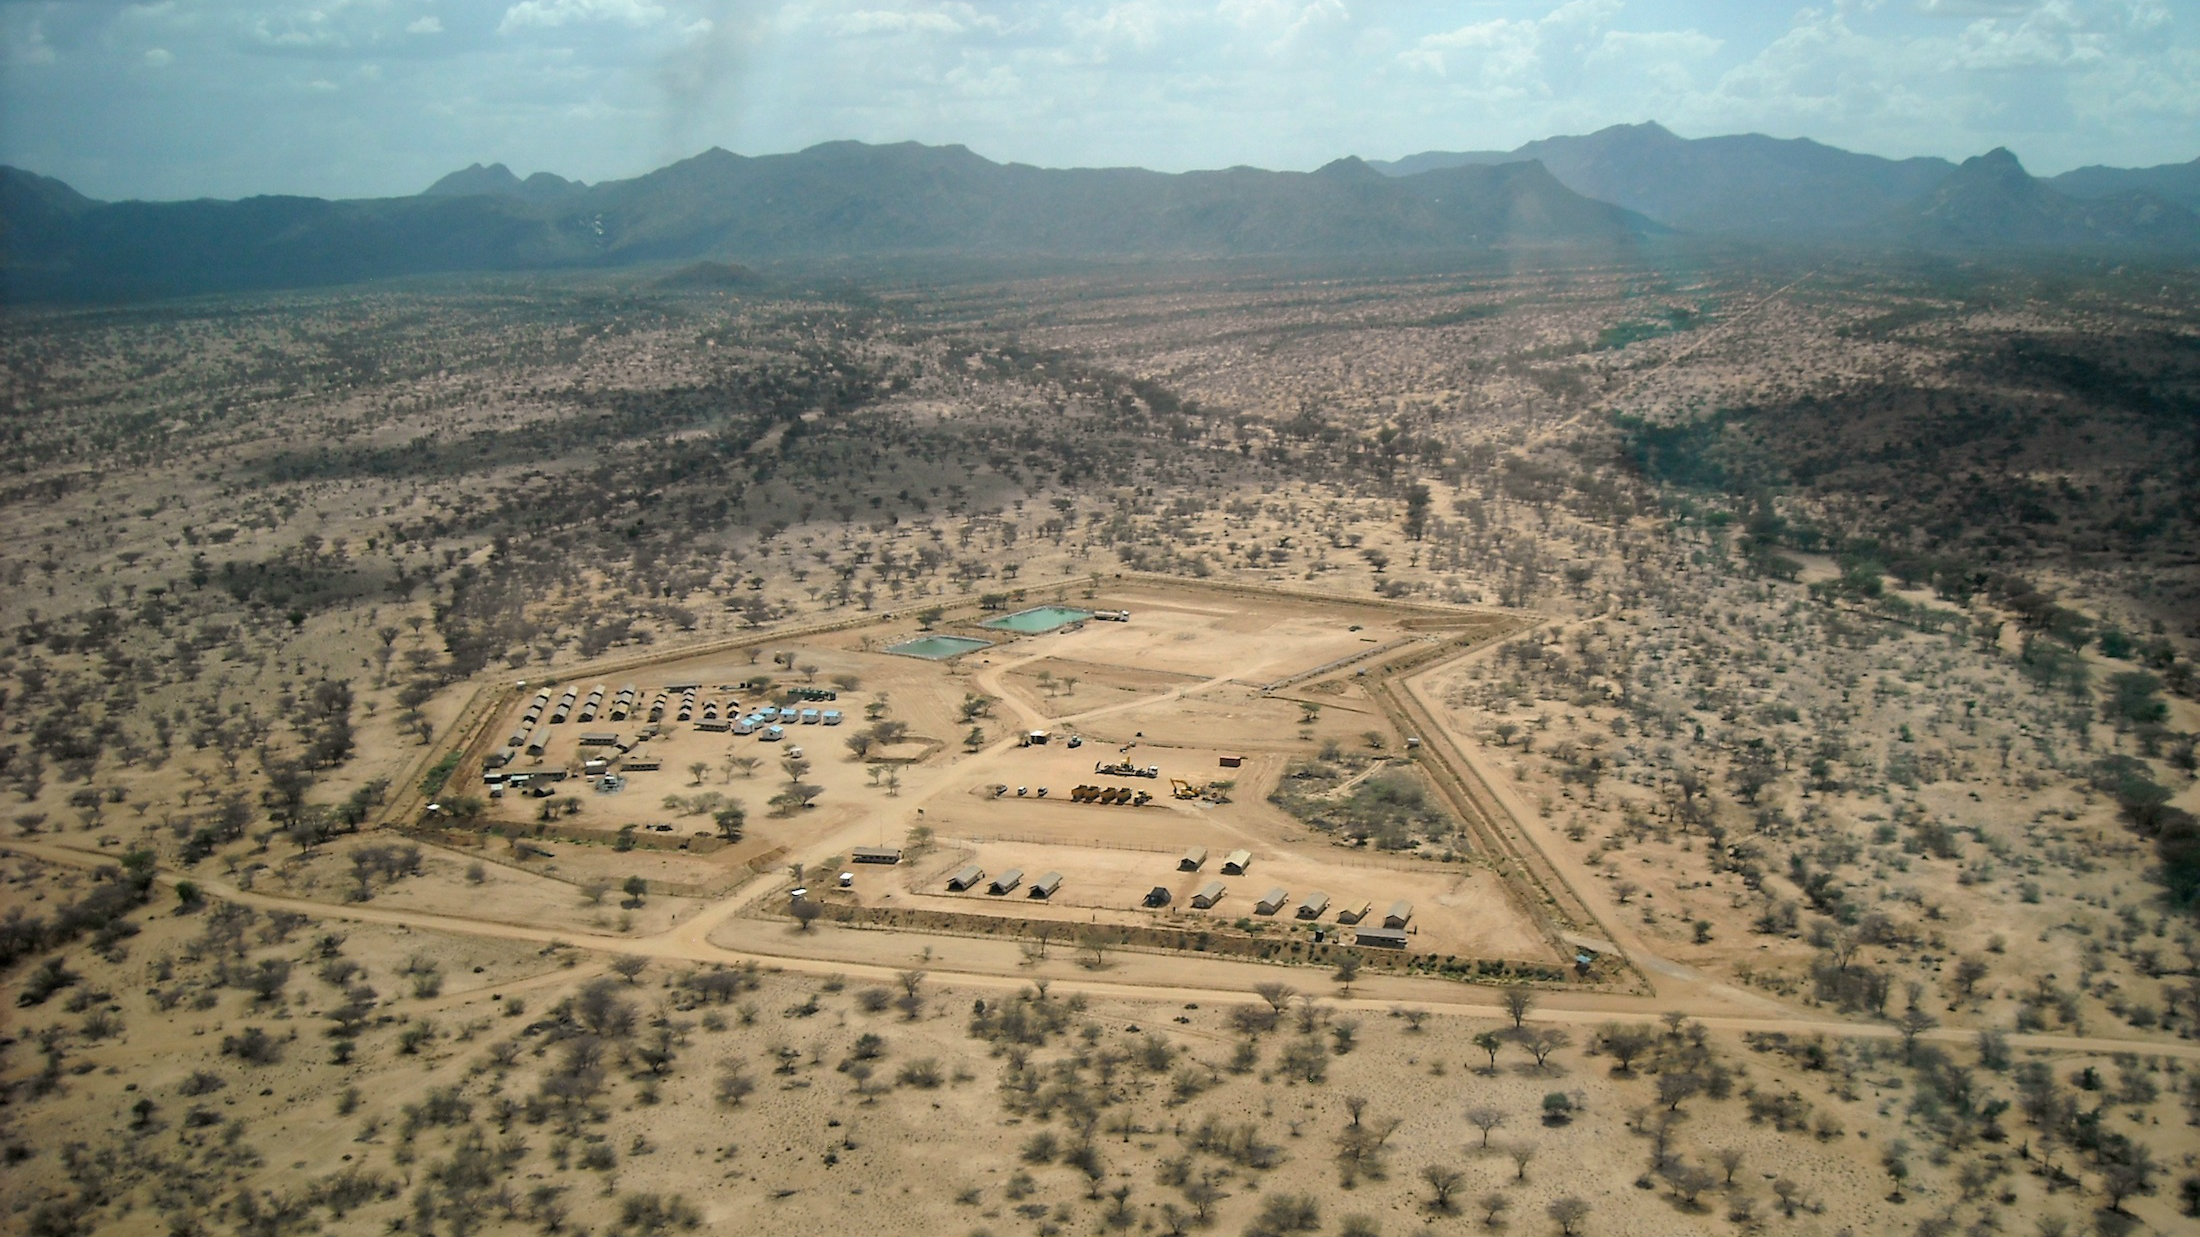 The Ngamia drilling site in Turkana, northwestern Kenya where Kenya first found oil in March 2012